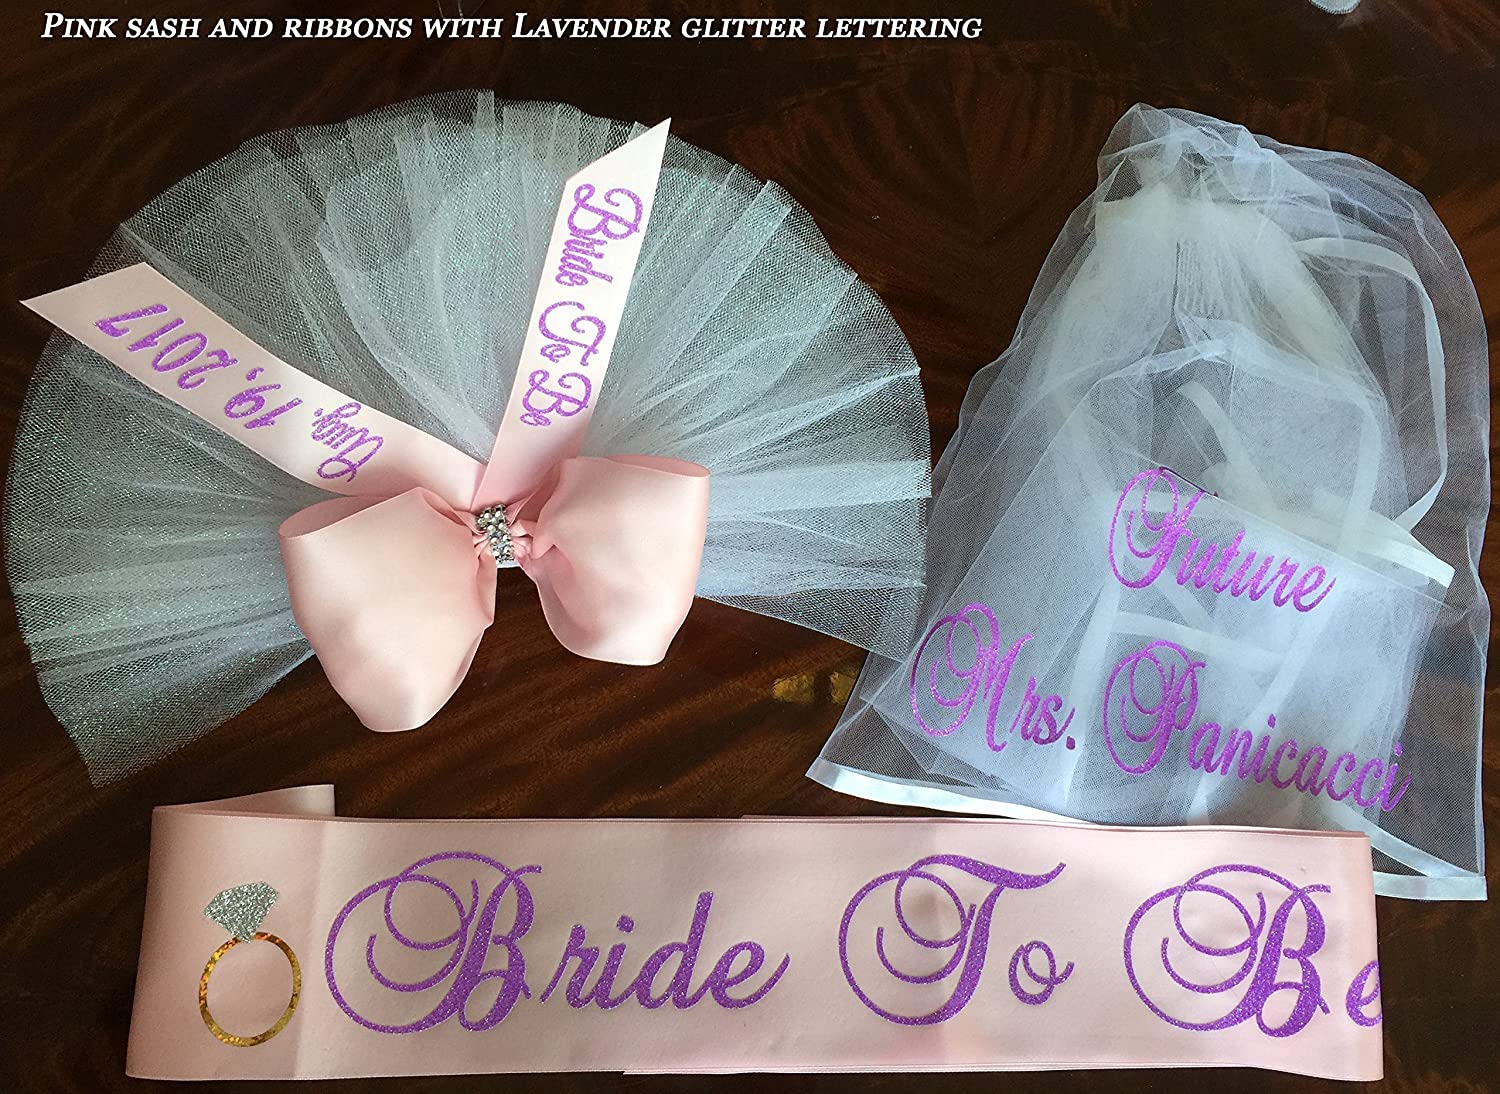 Bikini Veil, Booty Veil, Bachelorette Party Day and Night Set - PERSONALIZED Hair Veil, Sash and Stunning Booty Cover for only $75 (An $90.00 VALUE if purchased separately) by SashANation